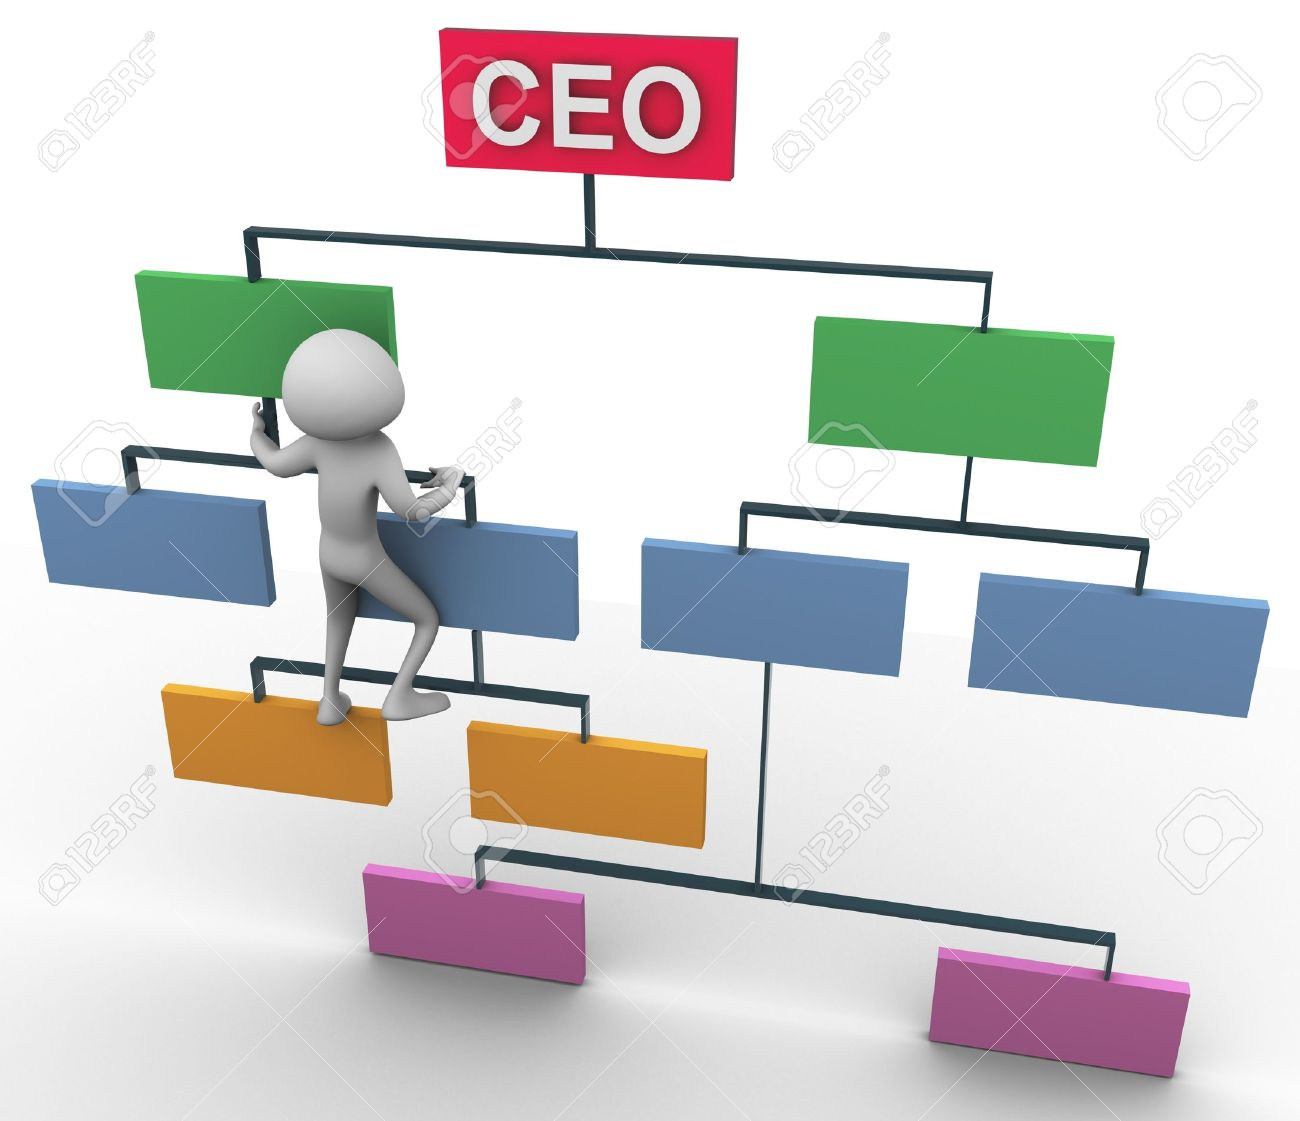 3d Man Climbing On Organization Chart For Ceo Position. Stock ...